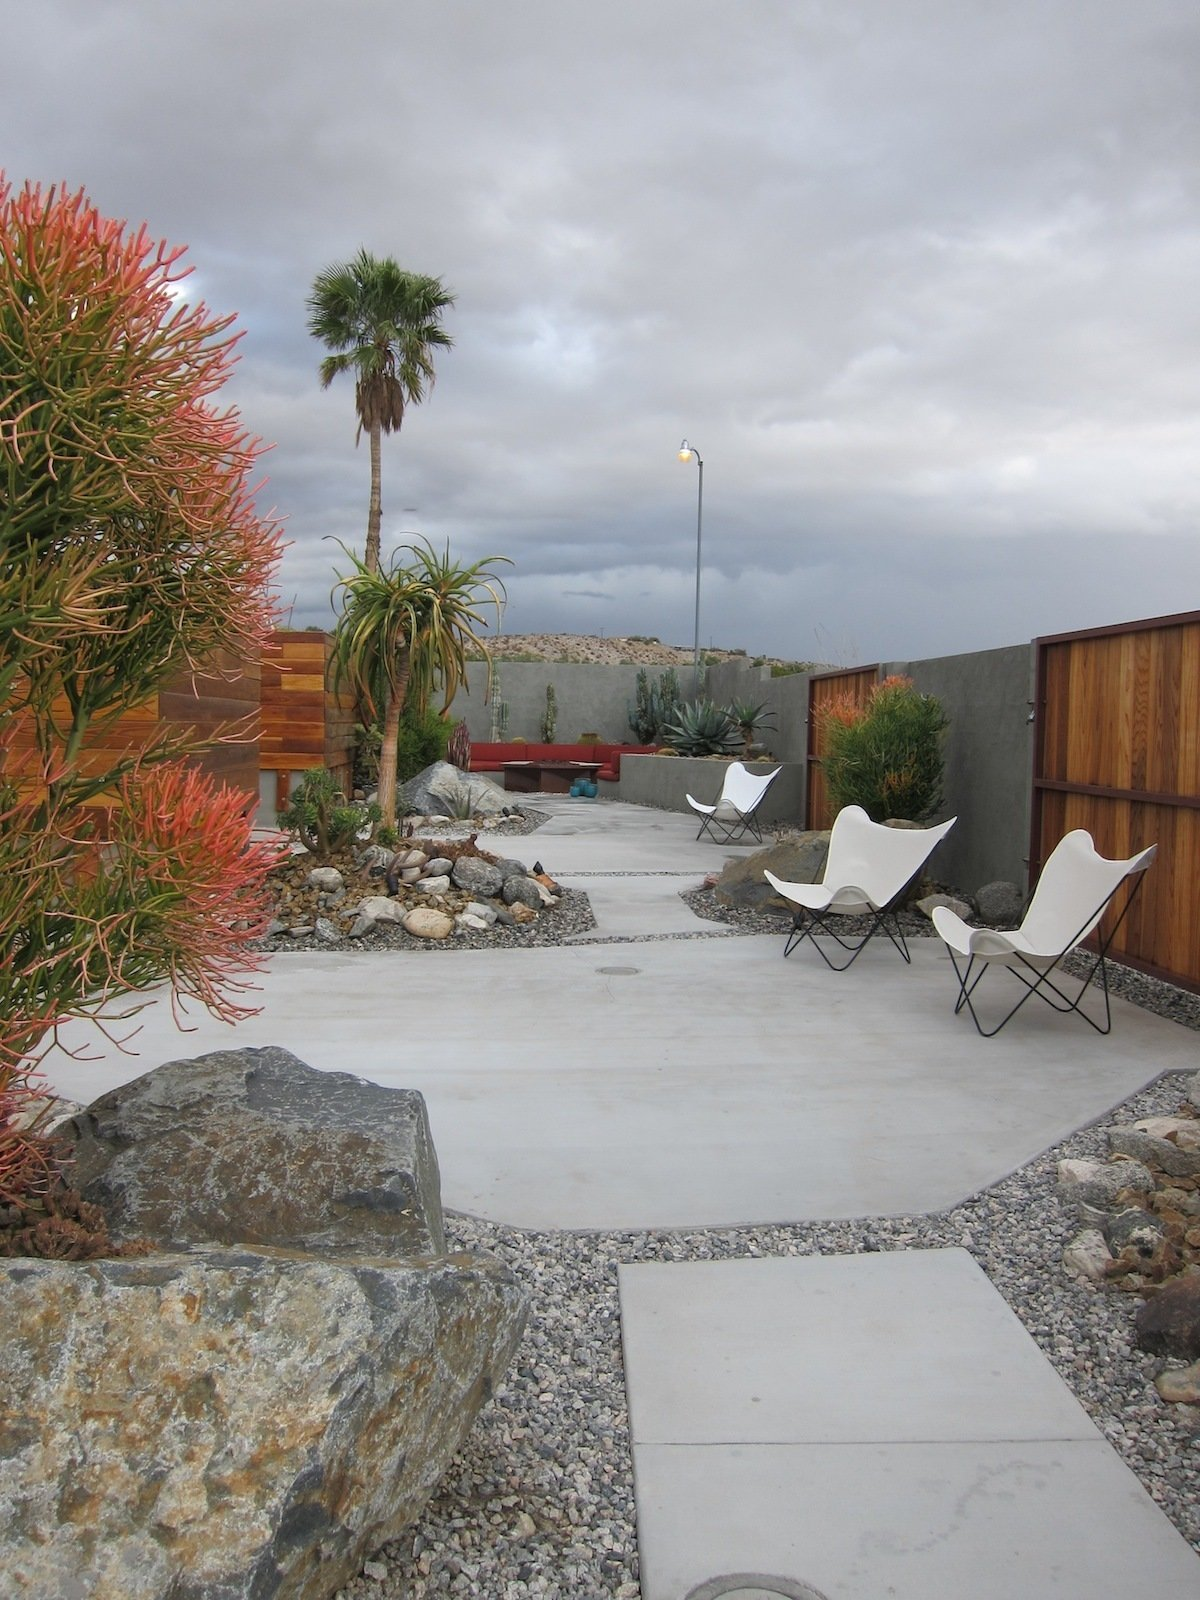 On the other side of the fence—built to protect the property from flash floods—is a desert oasis with cactus-lined walkways and patios set with butterfly chairs. The Midcentury Architecture of California Modernist John Lautner - Photo 4 of 6